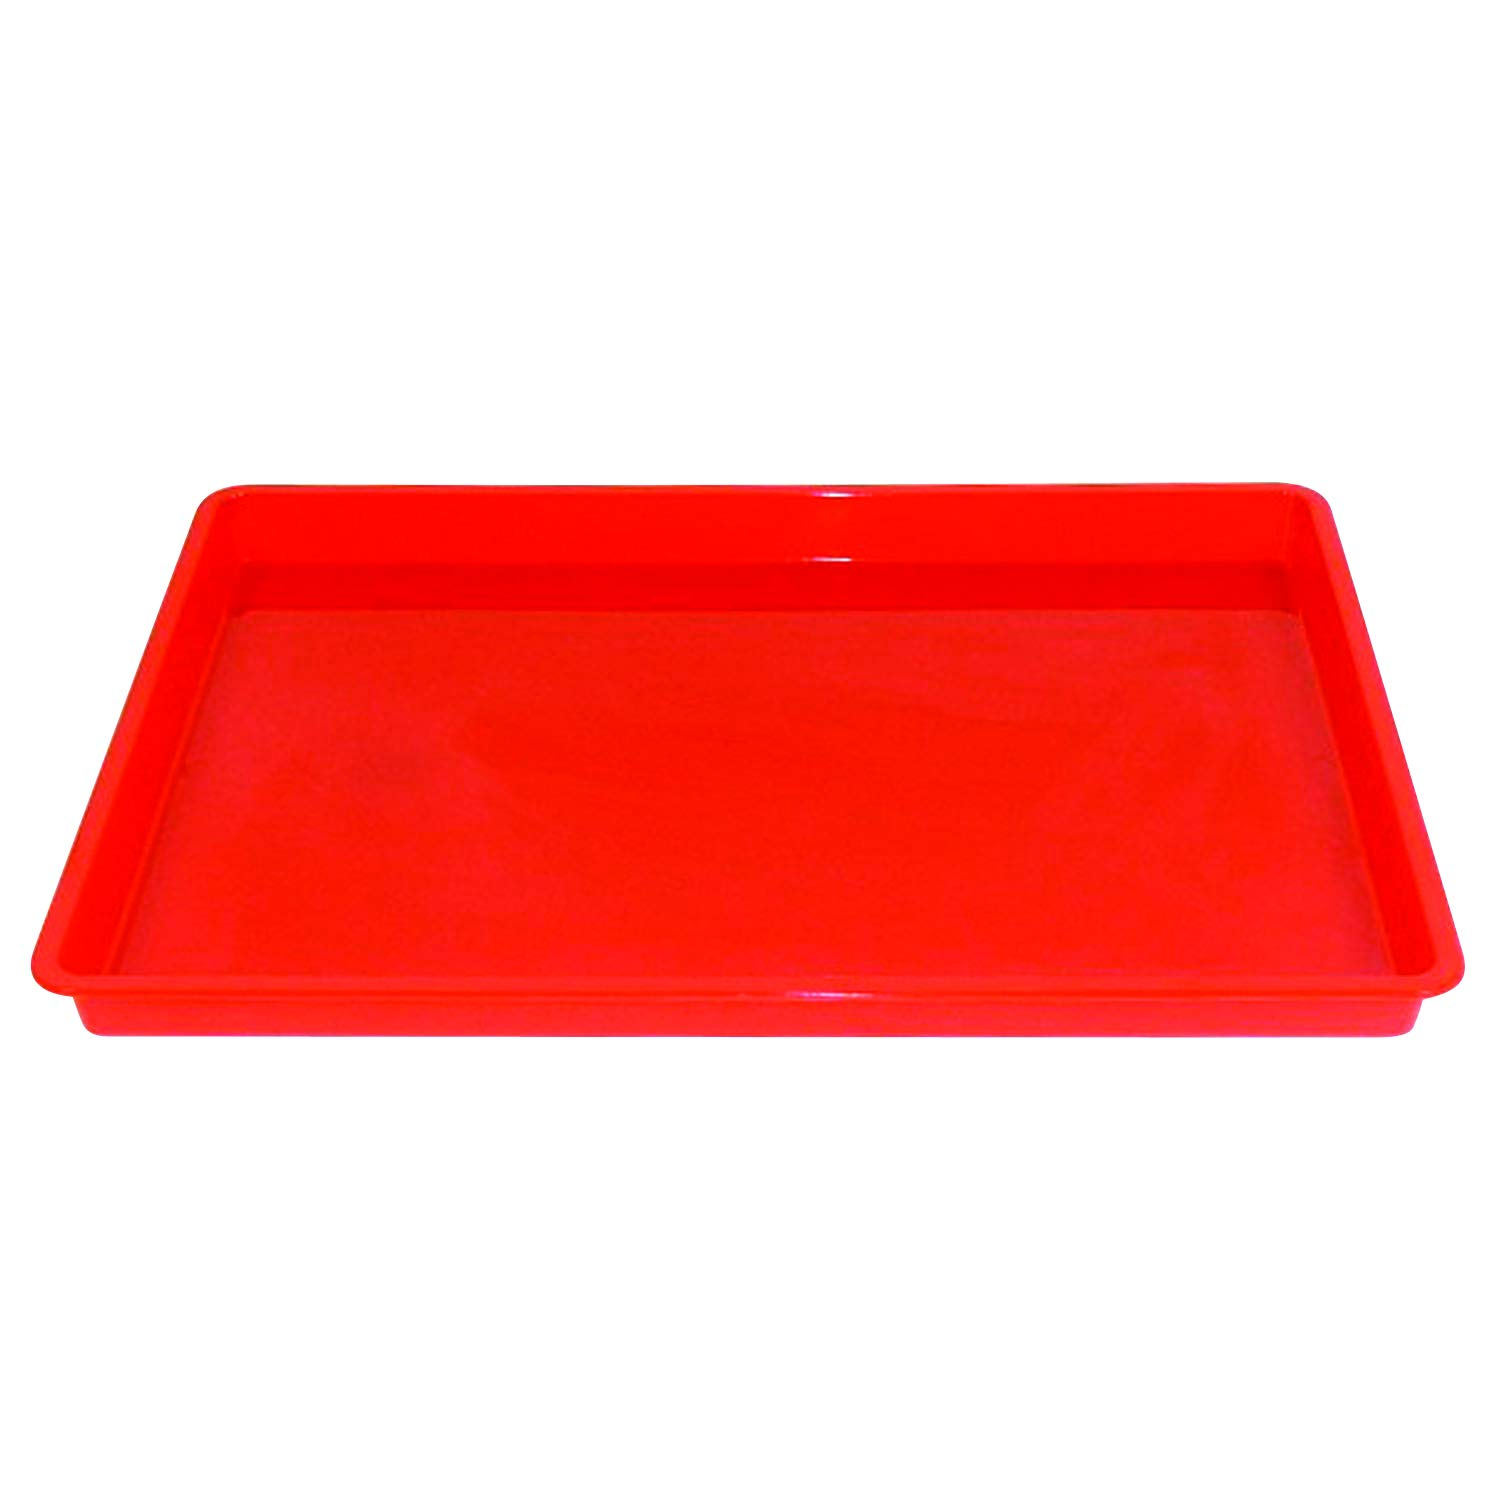 Romanoff Products ROM36902BN Creativitray Finger Paint Tray, Red, Pack of 6